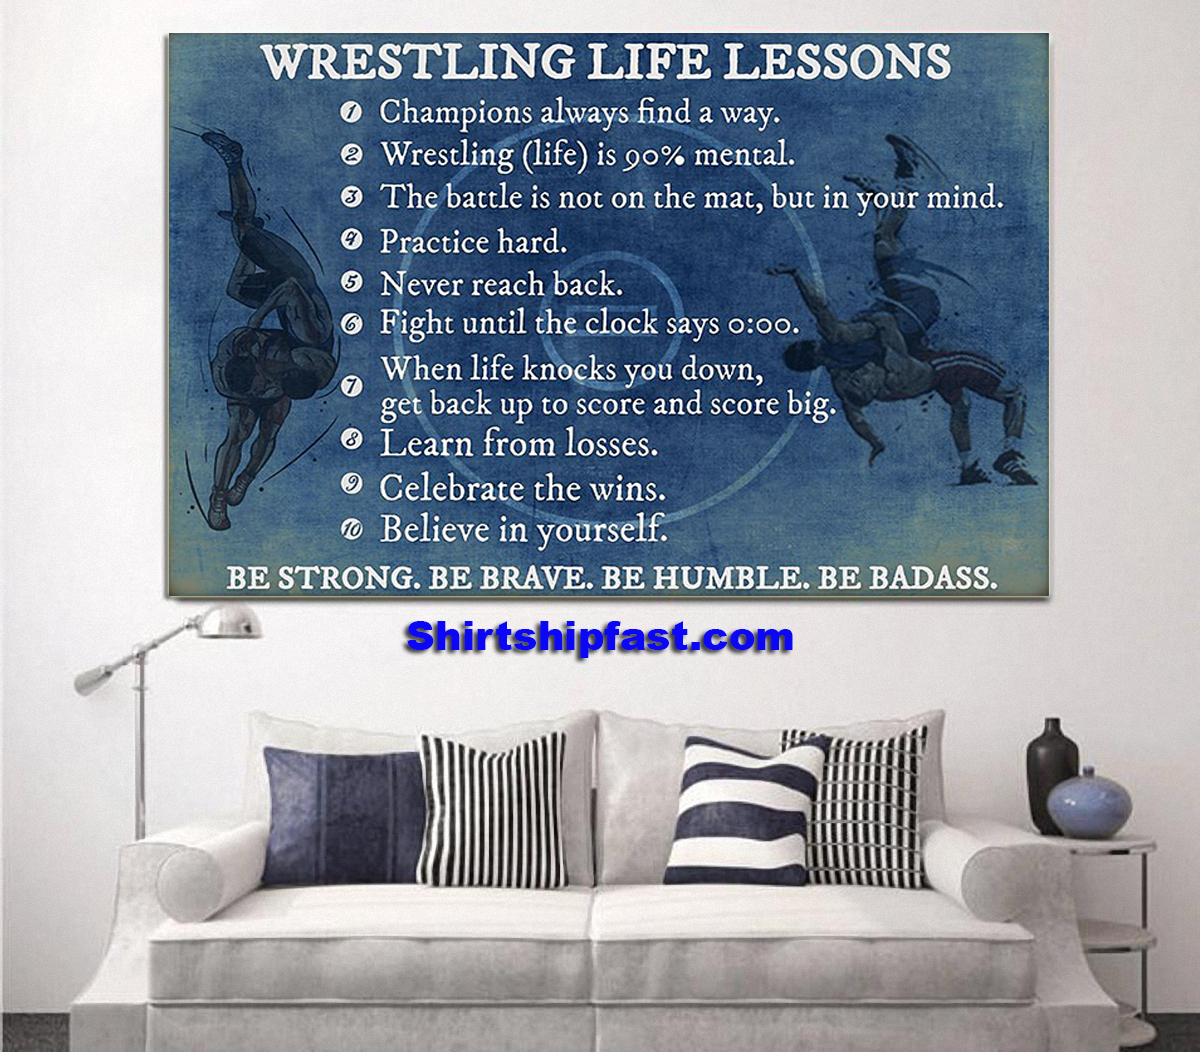 Wrestling life lessons be strong be brave be humble be badass poster - Picture 1